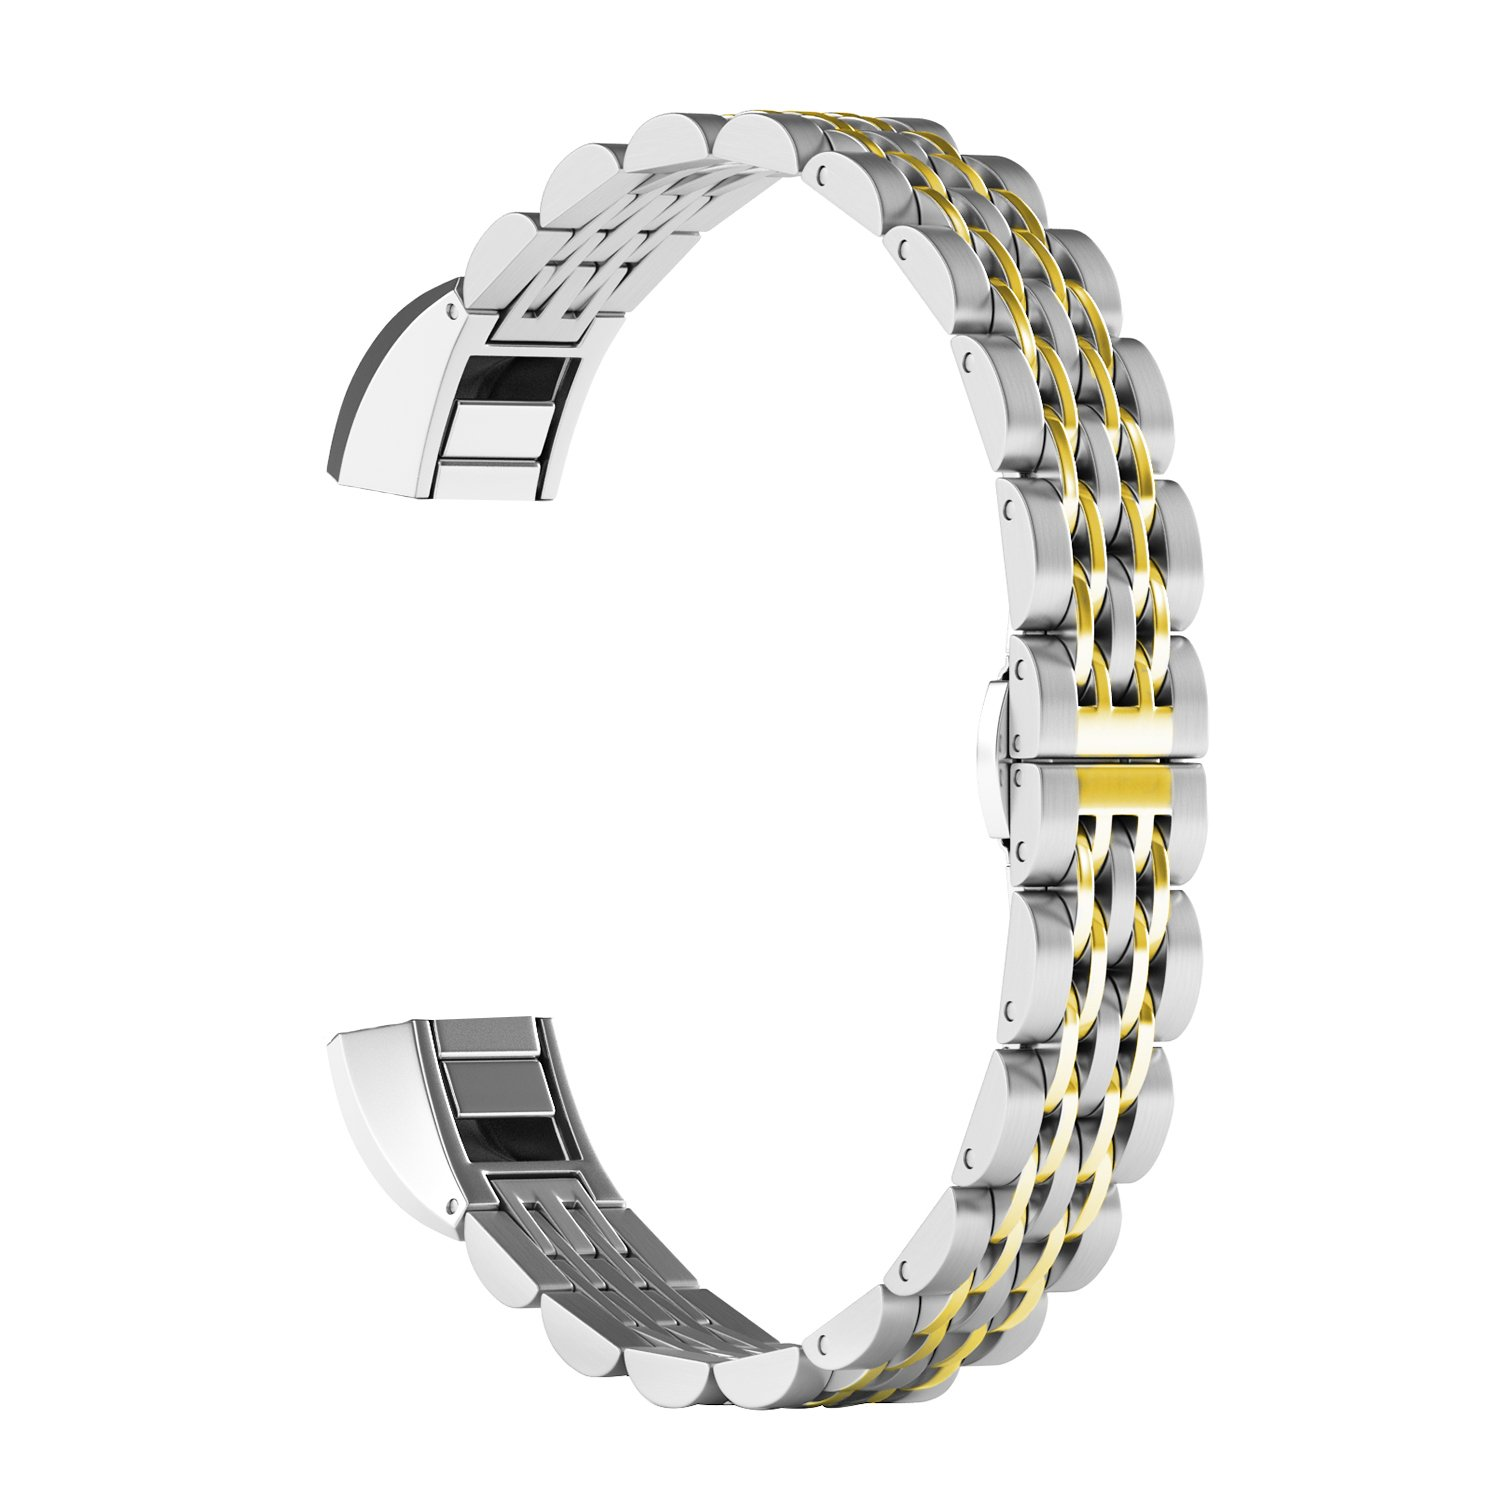 ImmSss for Fitbit Alta HR Bands and Fitbit Alta Bands, Stainless Steel Jewelry Bracelet Accessories Replacement Band for Fitbit Alta HR and Fitbit Alta for Women Men, 5.5''-8.9''